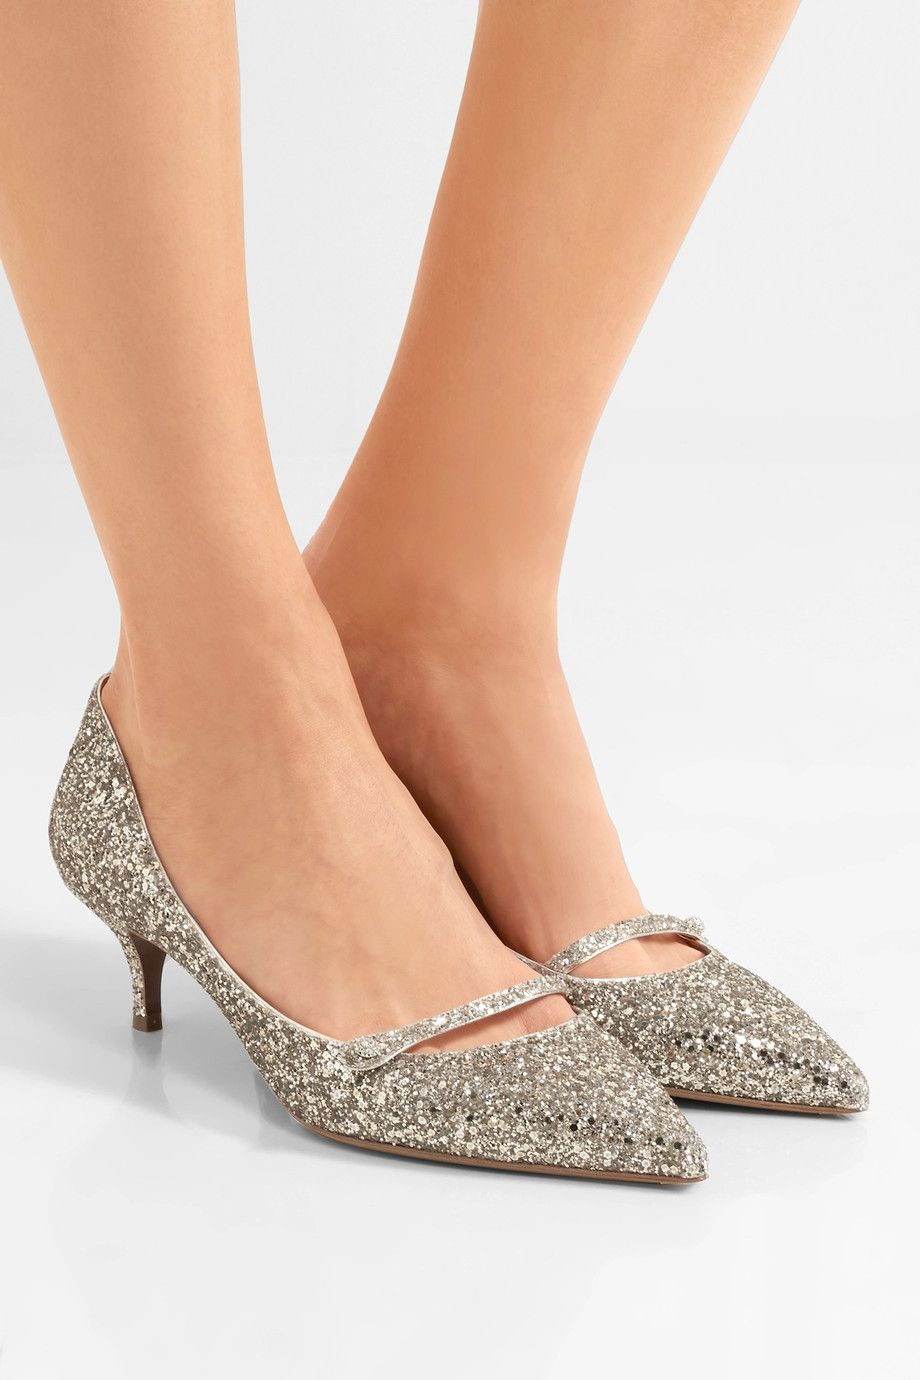 92709c1d2b93 Tabitha Simmons - Layton glittered leather pumps | Hello Lover ...